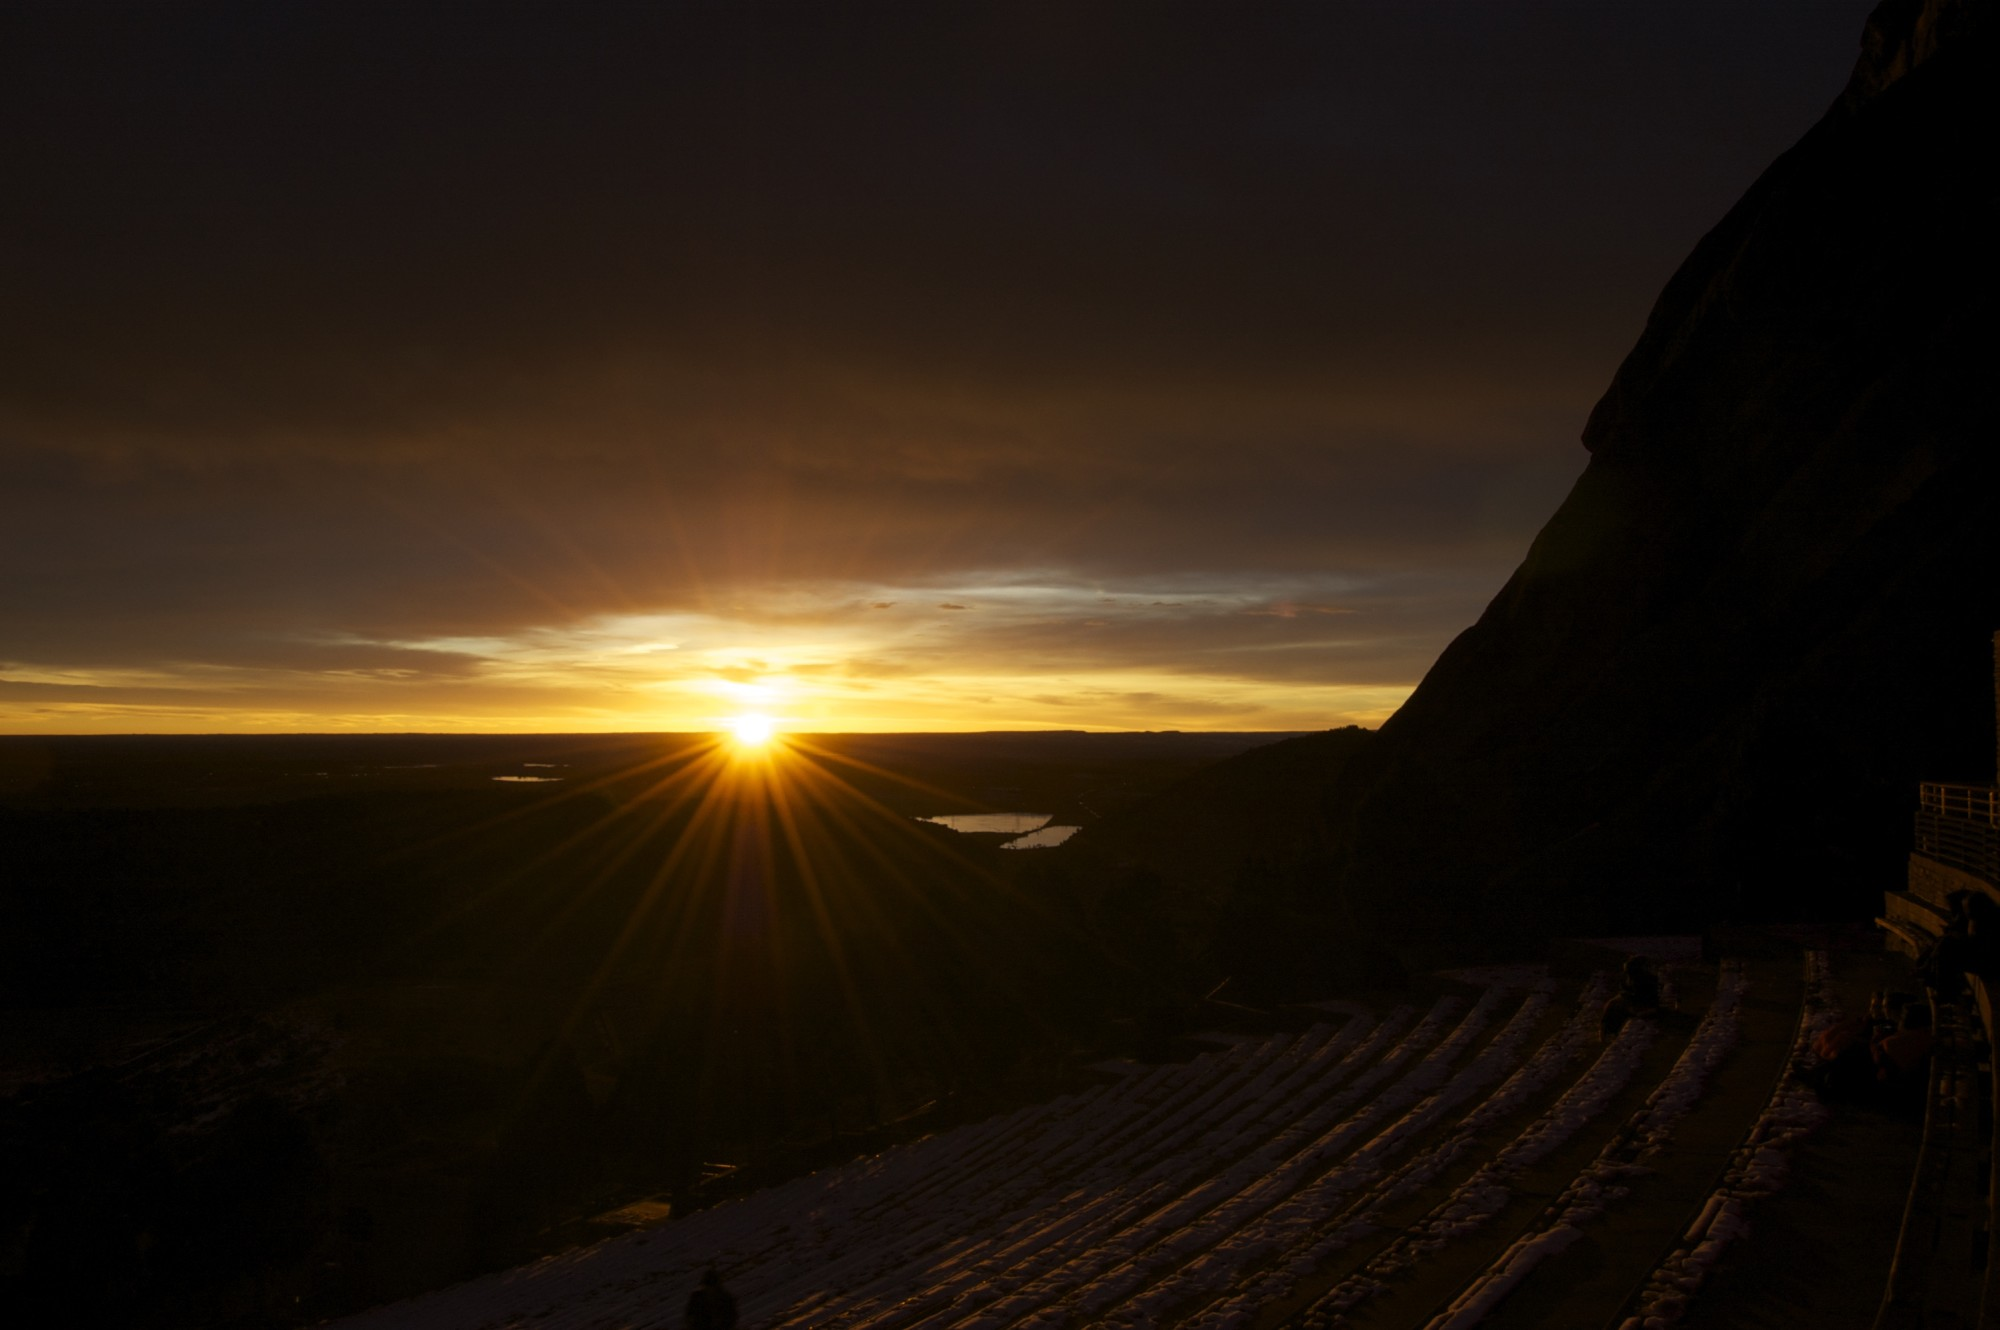 Sunrise at Red Rock Ampitheater